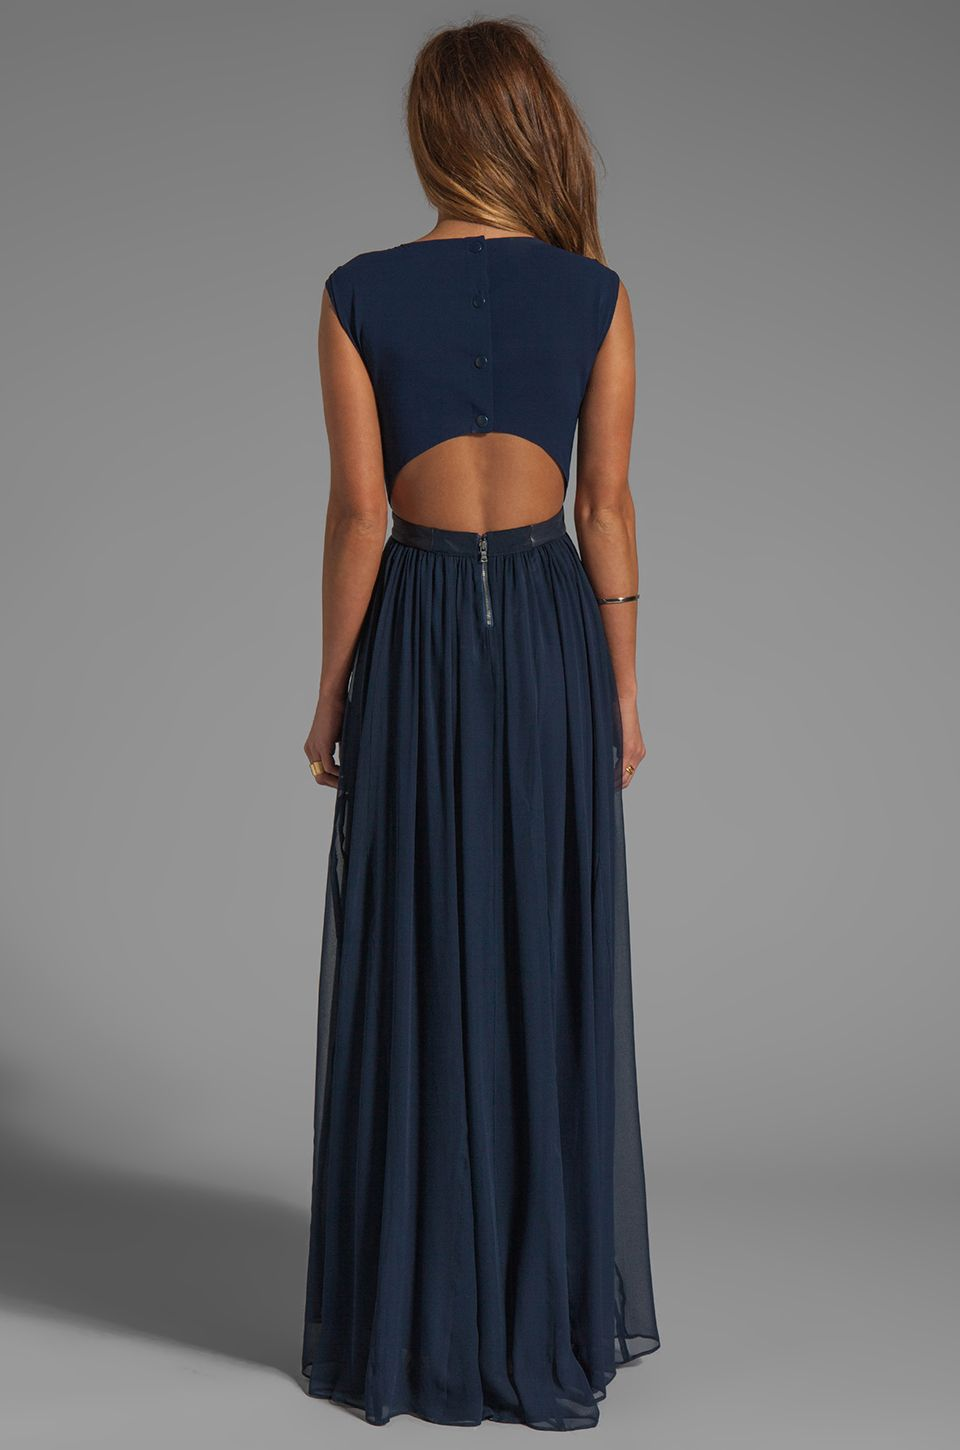 8c0581442ca Alice + Olivia Triss Sleeveless Maxi Dress with Leather Trim in Navy ...